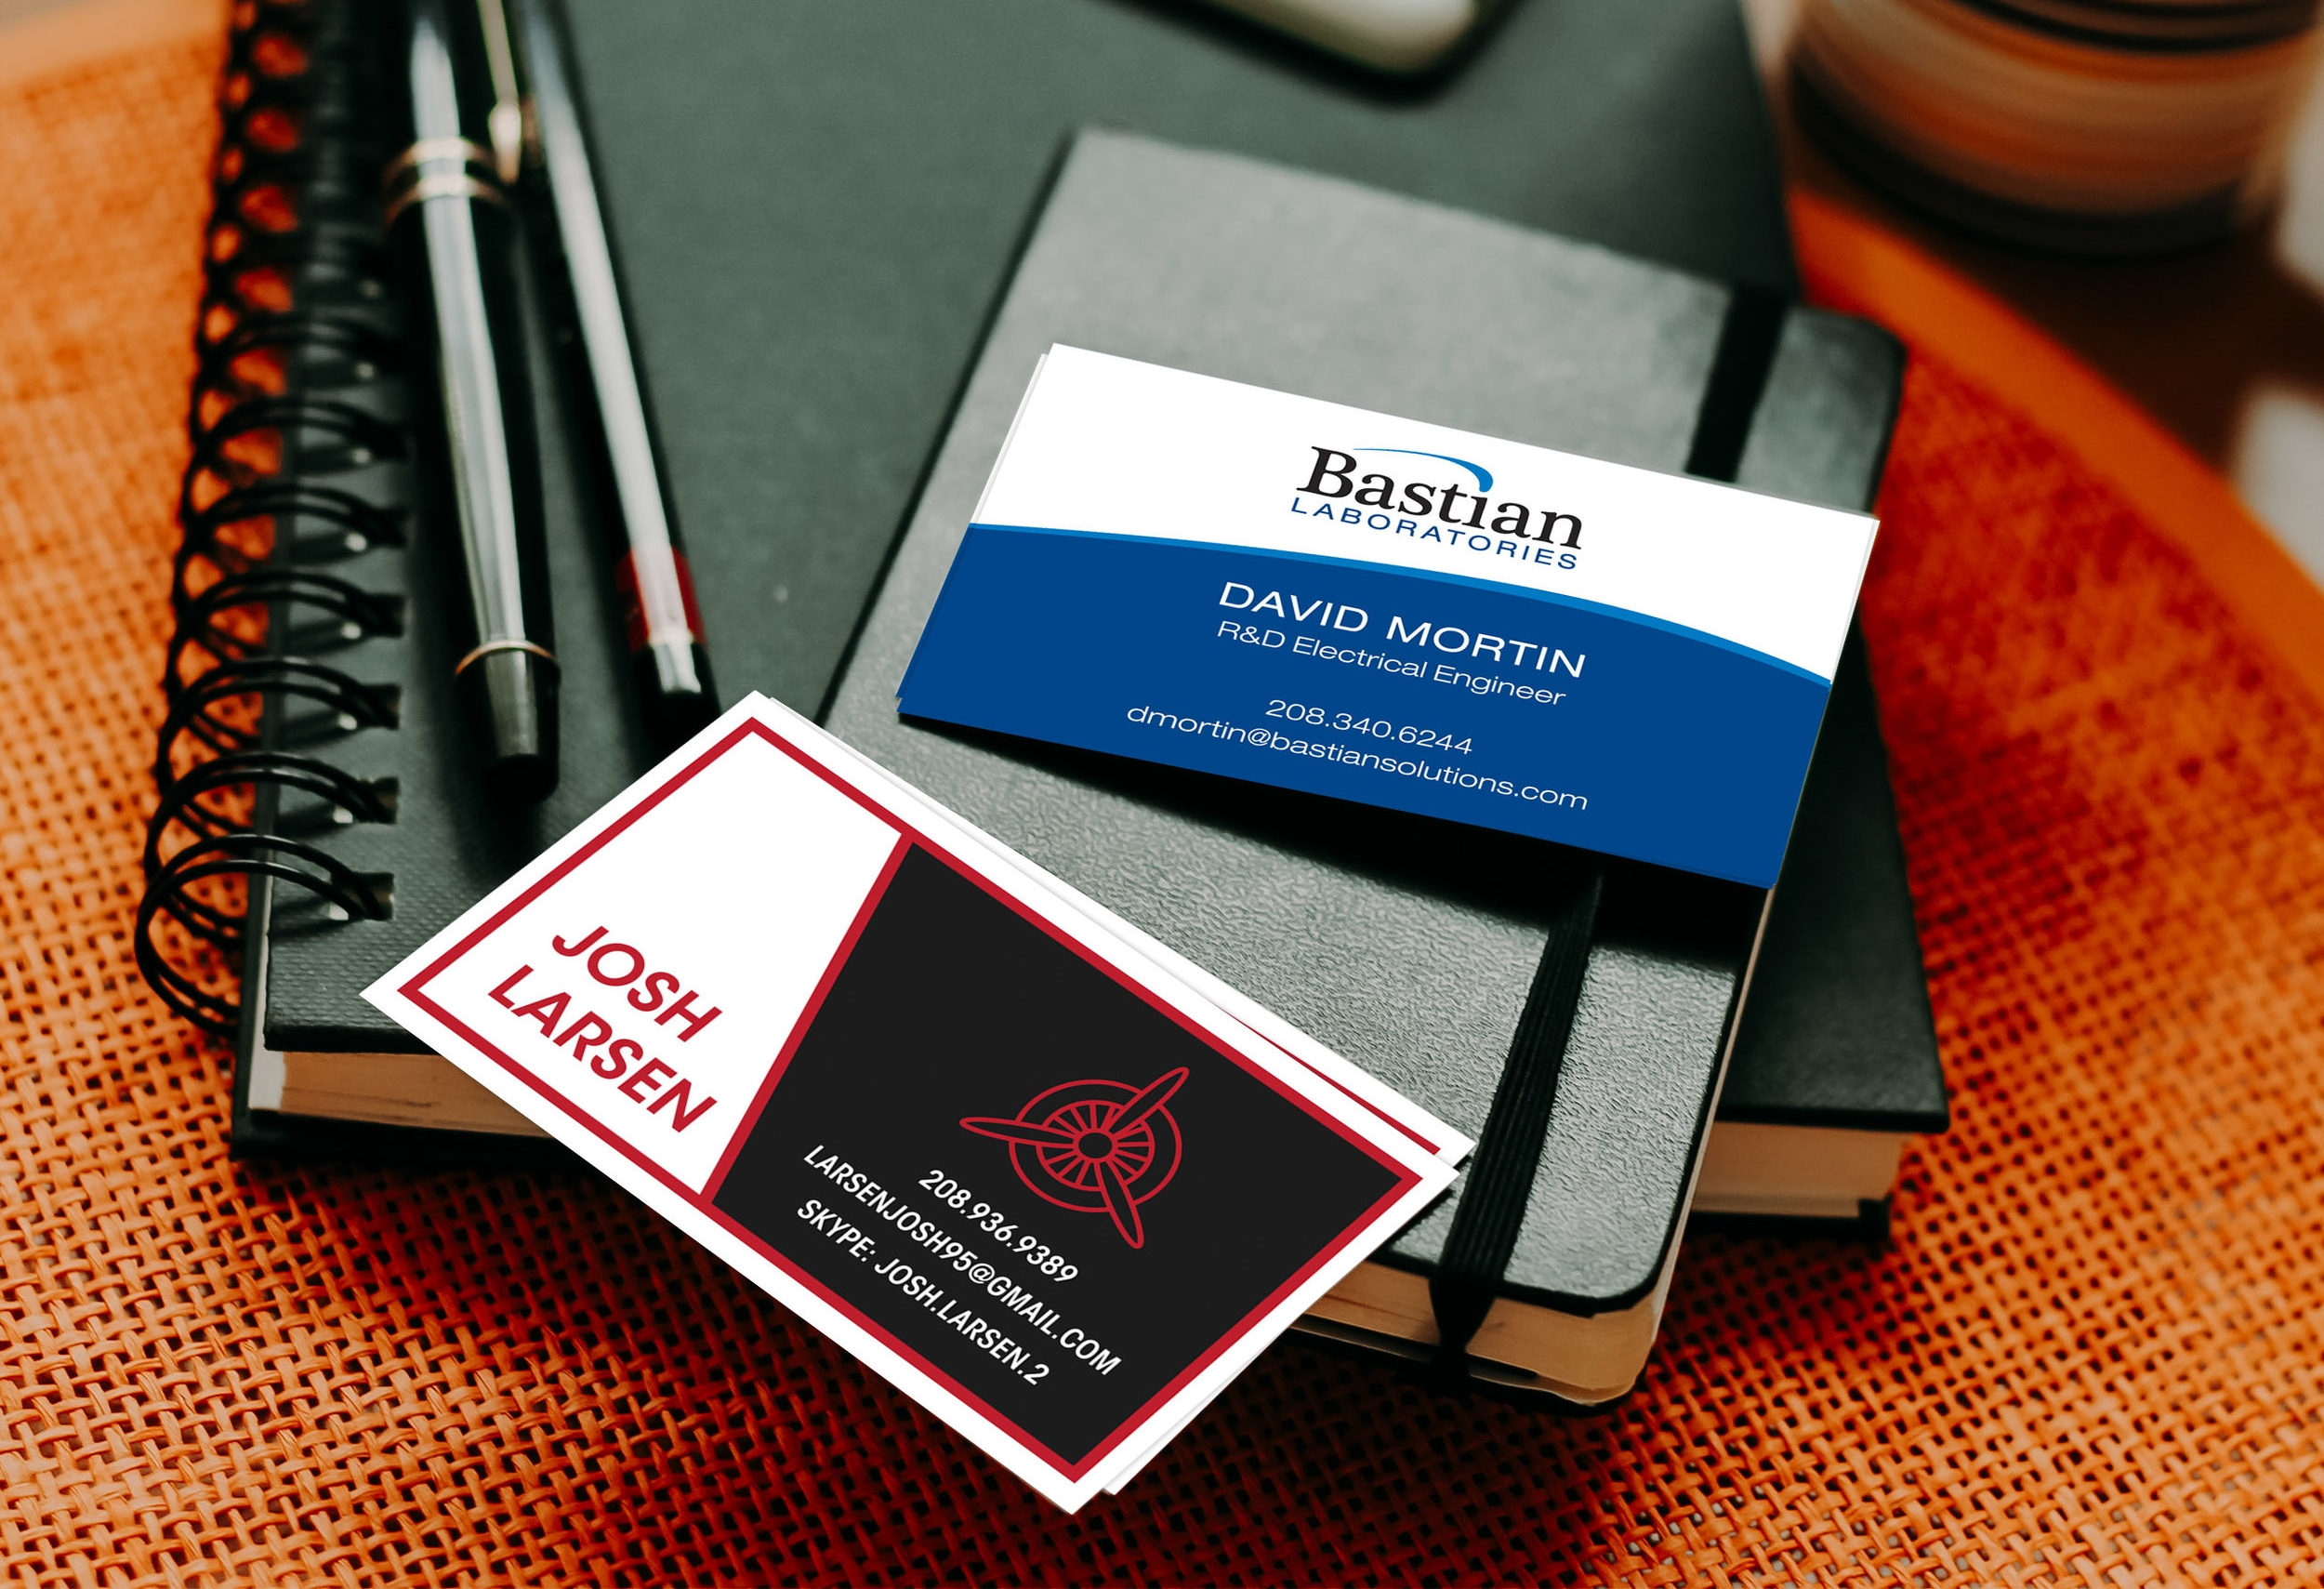 Business card final design mockup.